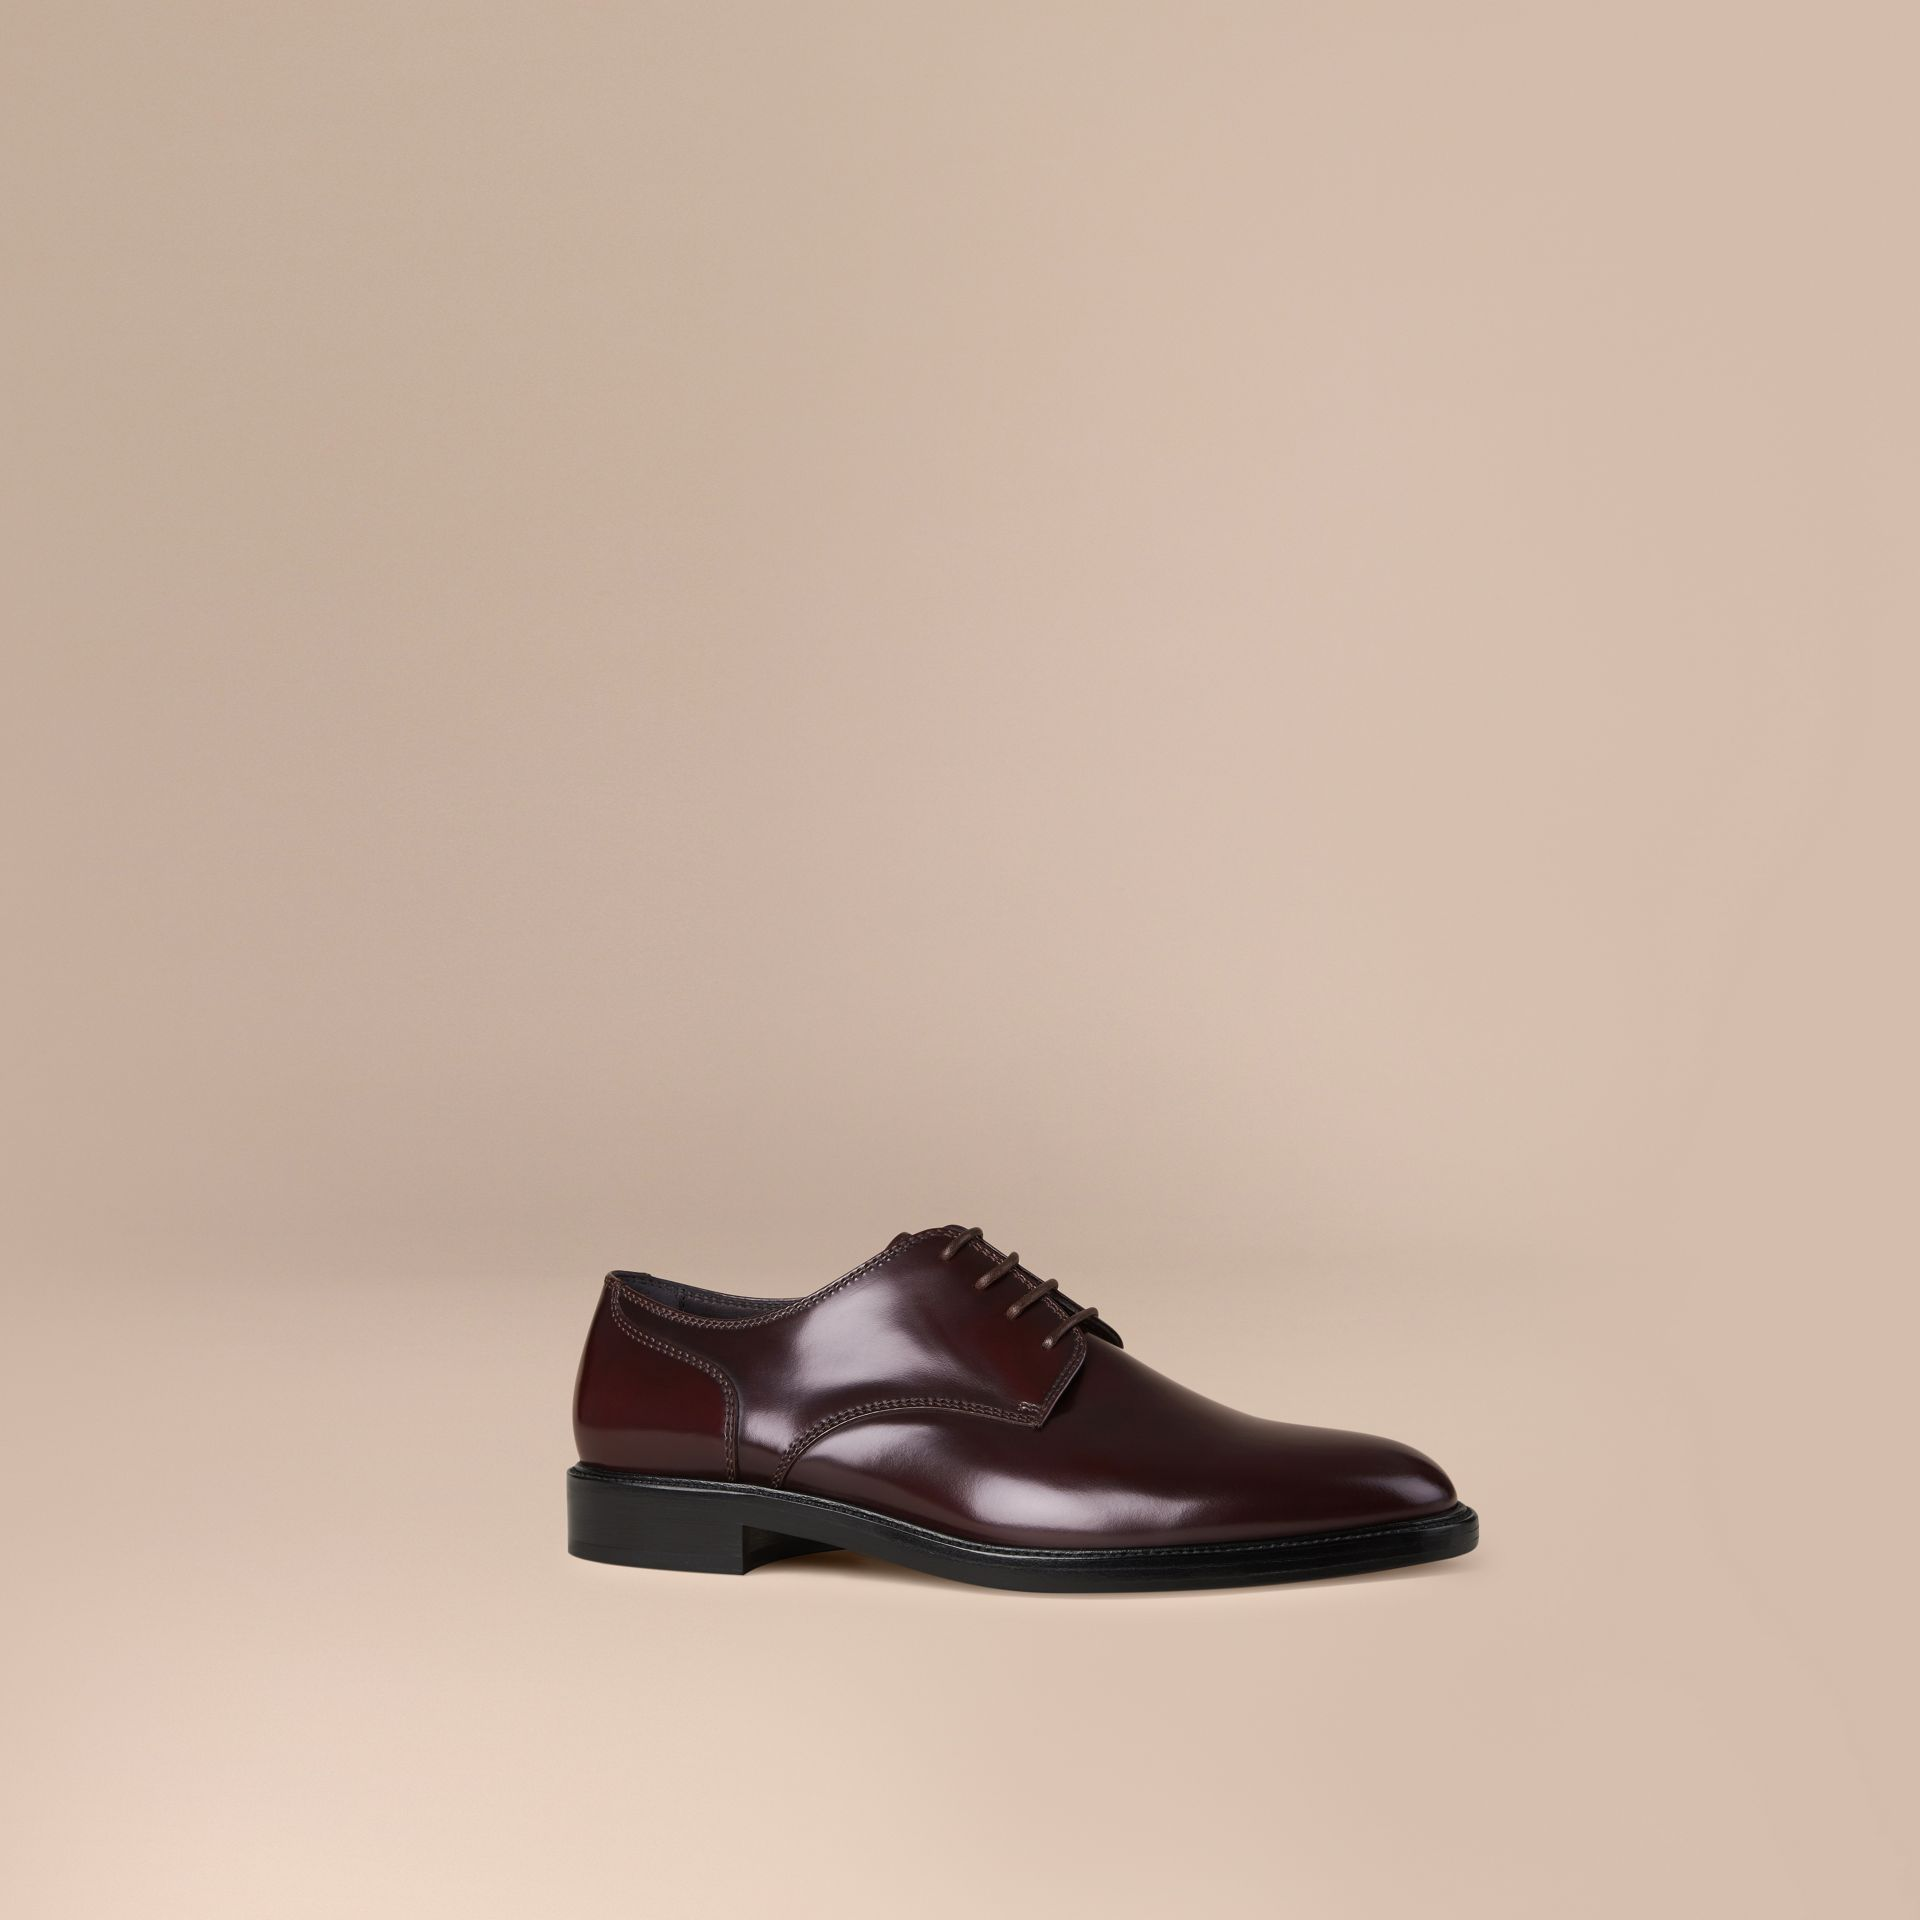 Oxblood Leather Derby Shoes Oxblood - gallery image 1